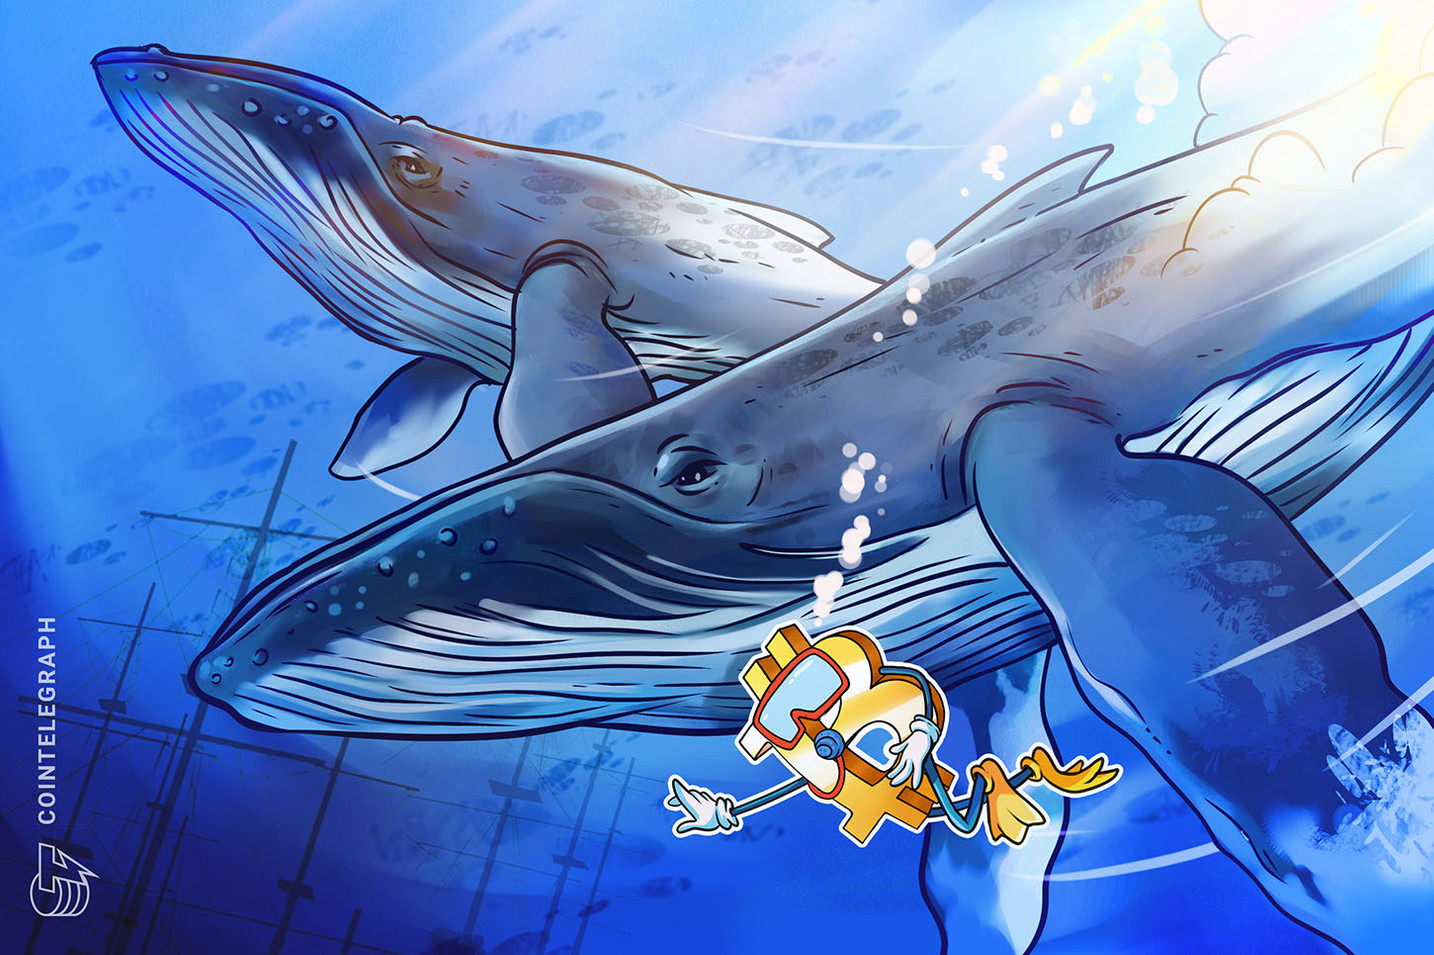 Bitcoin whales are accumulating BTC around $48K, on-chain data suggests